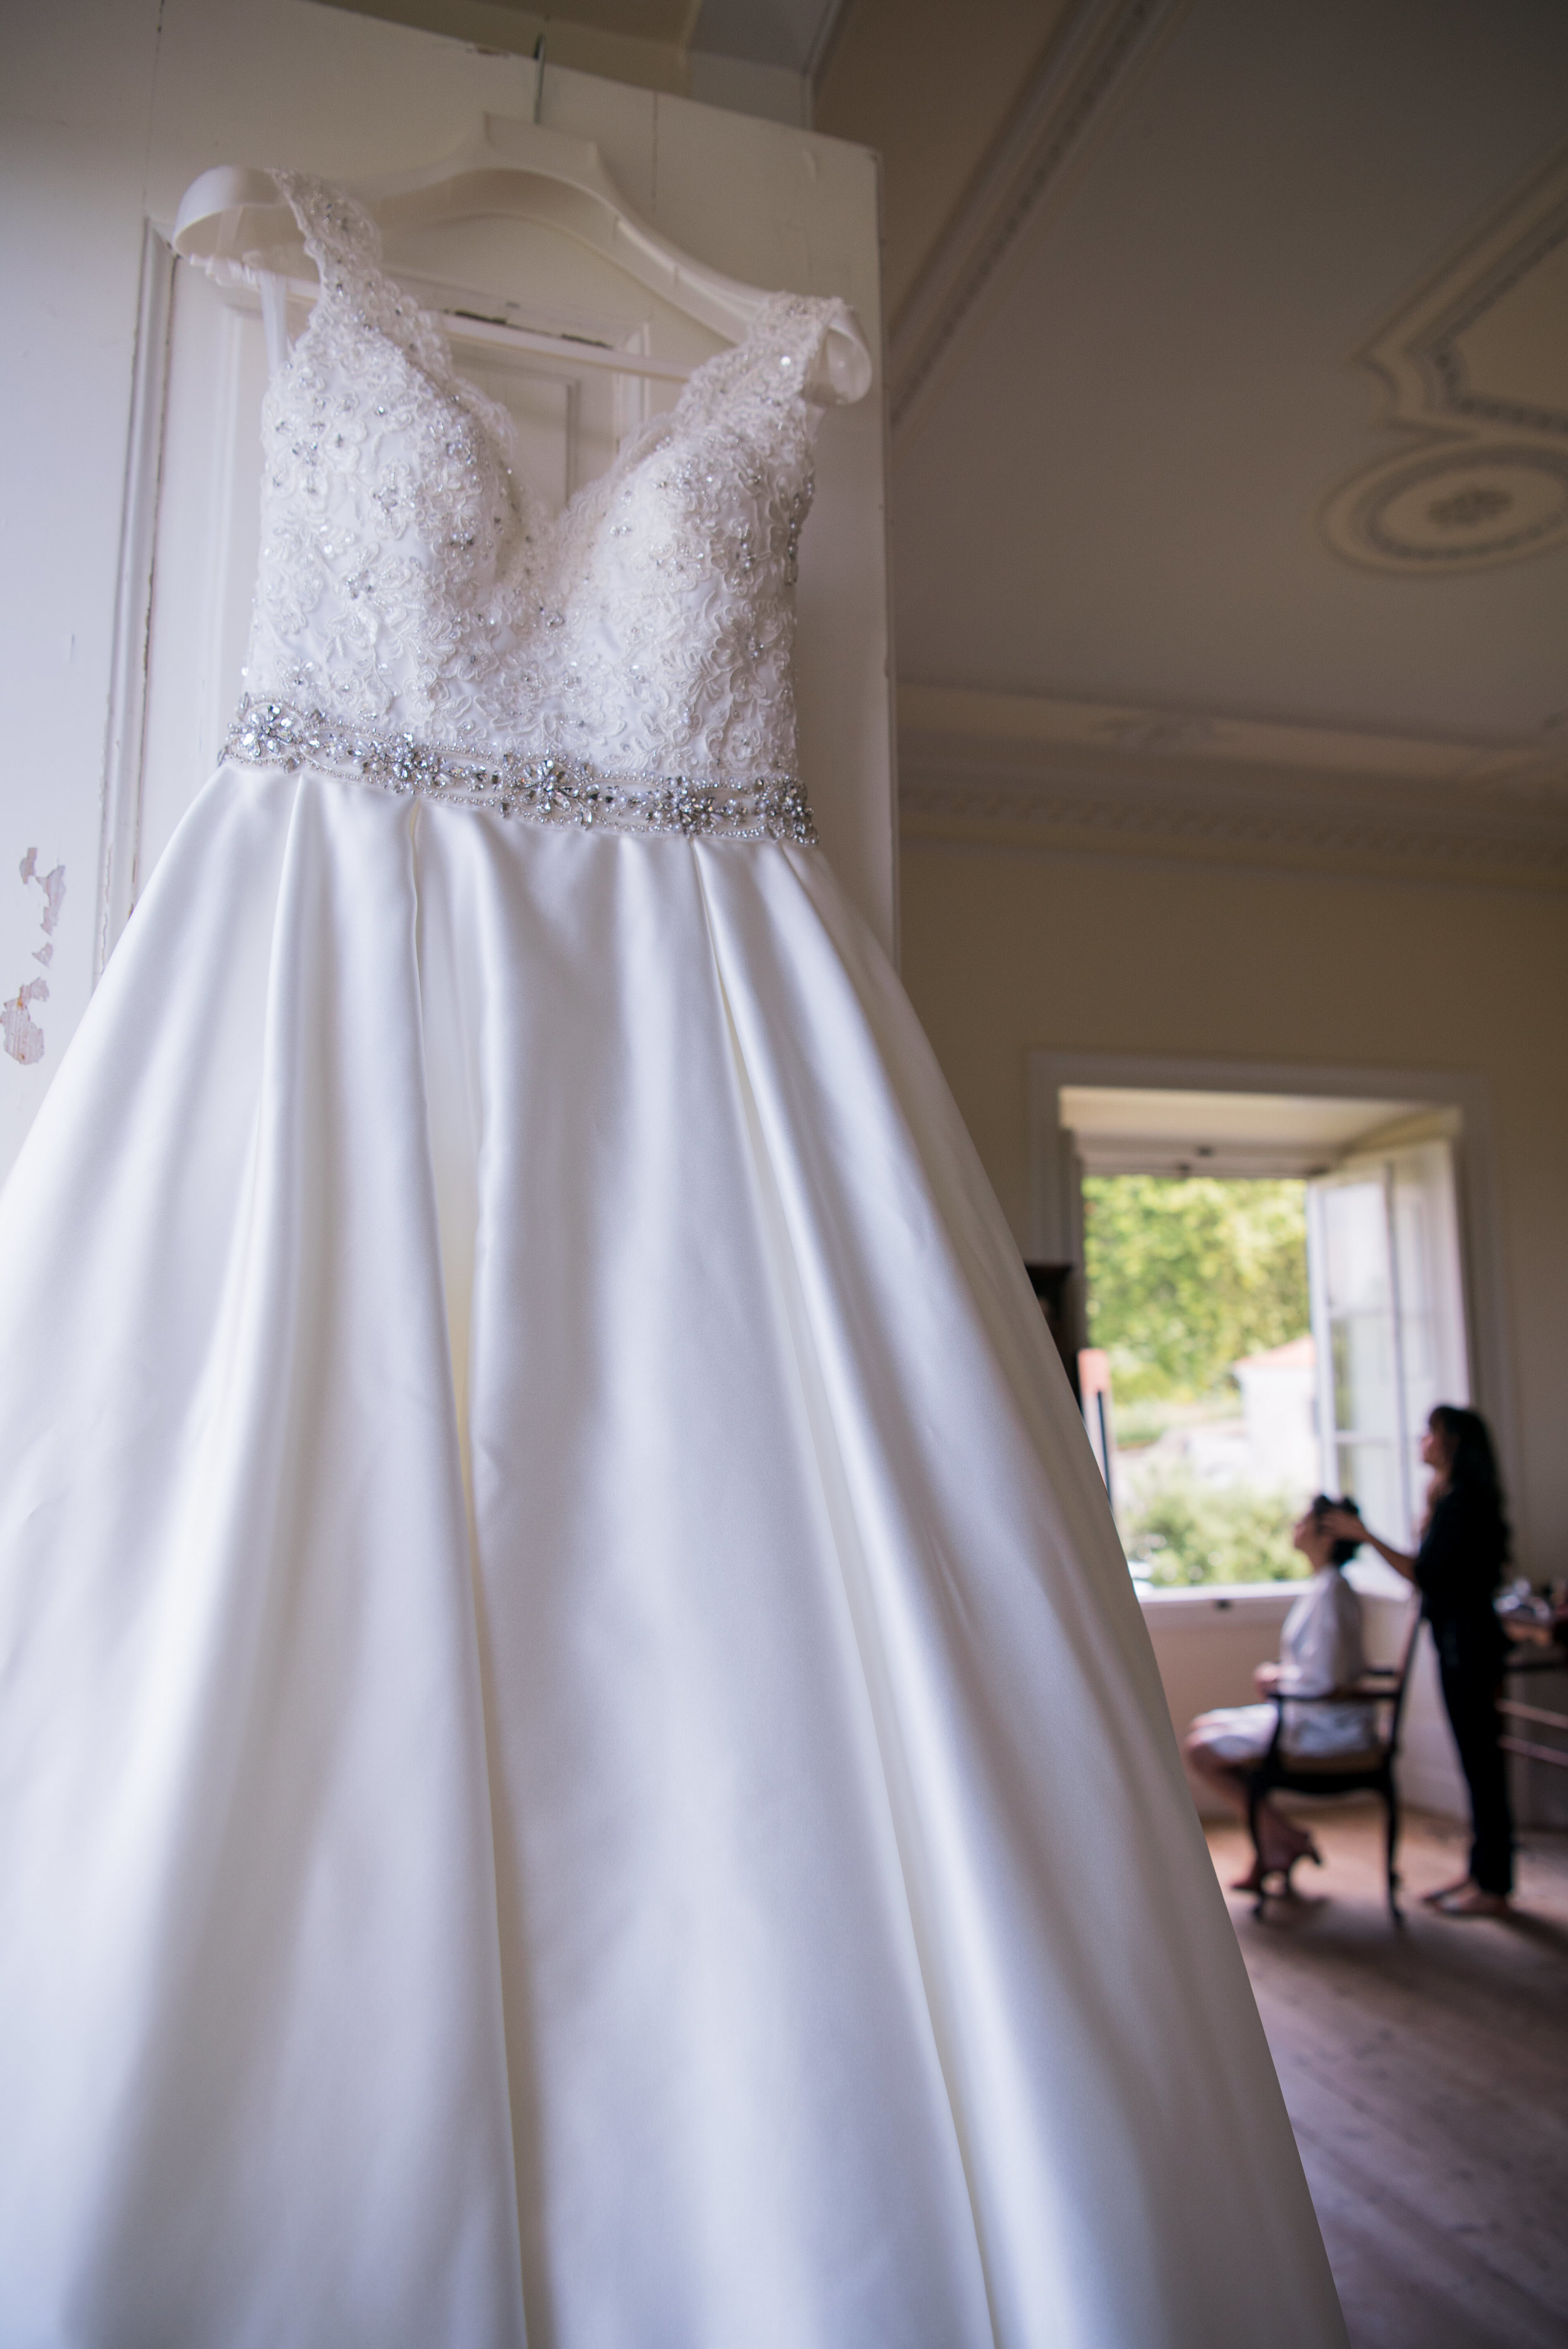 The wedding dress (in case you like this one, I would sell mine - as I am not planing to use it again).